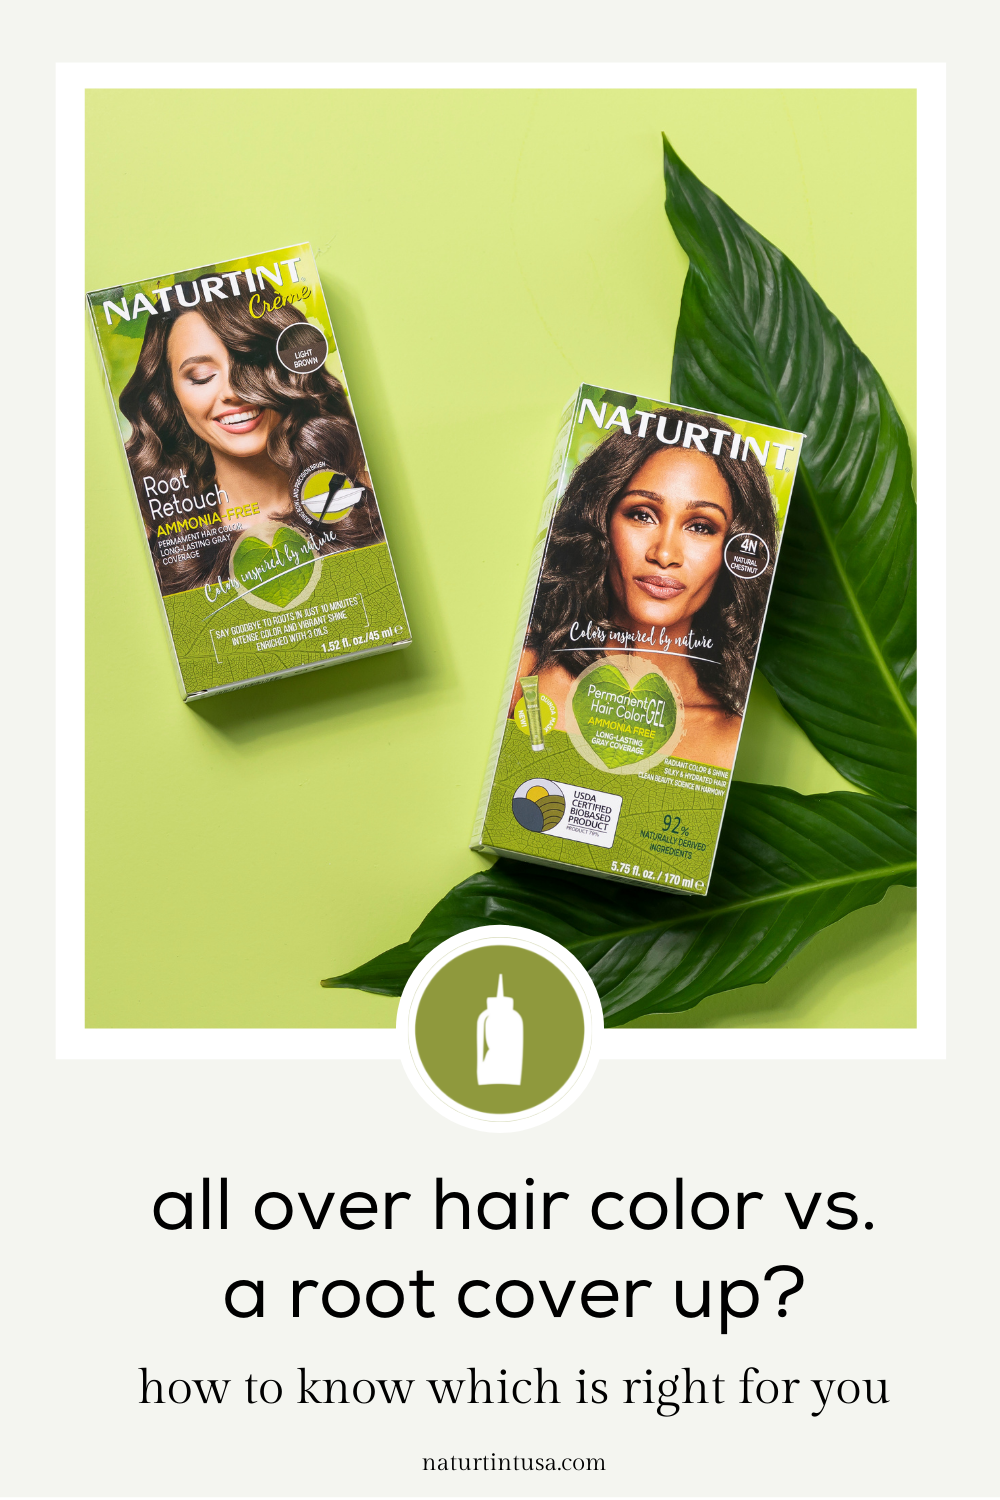 Insider tips to help you figure out whether to do all over color or a root cover up